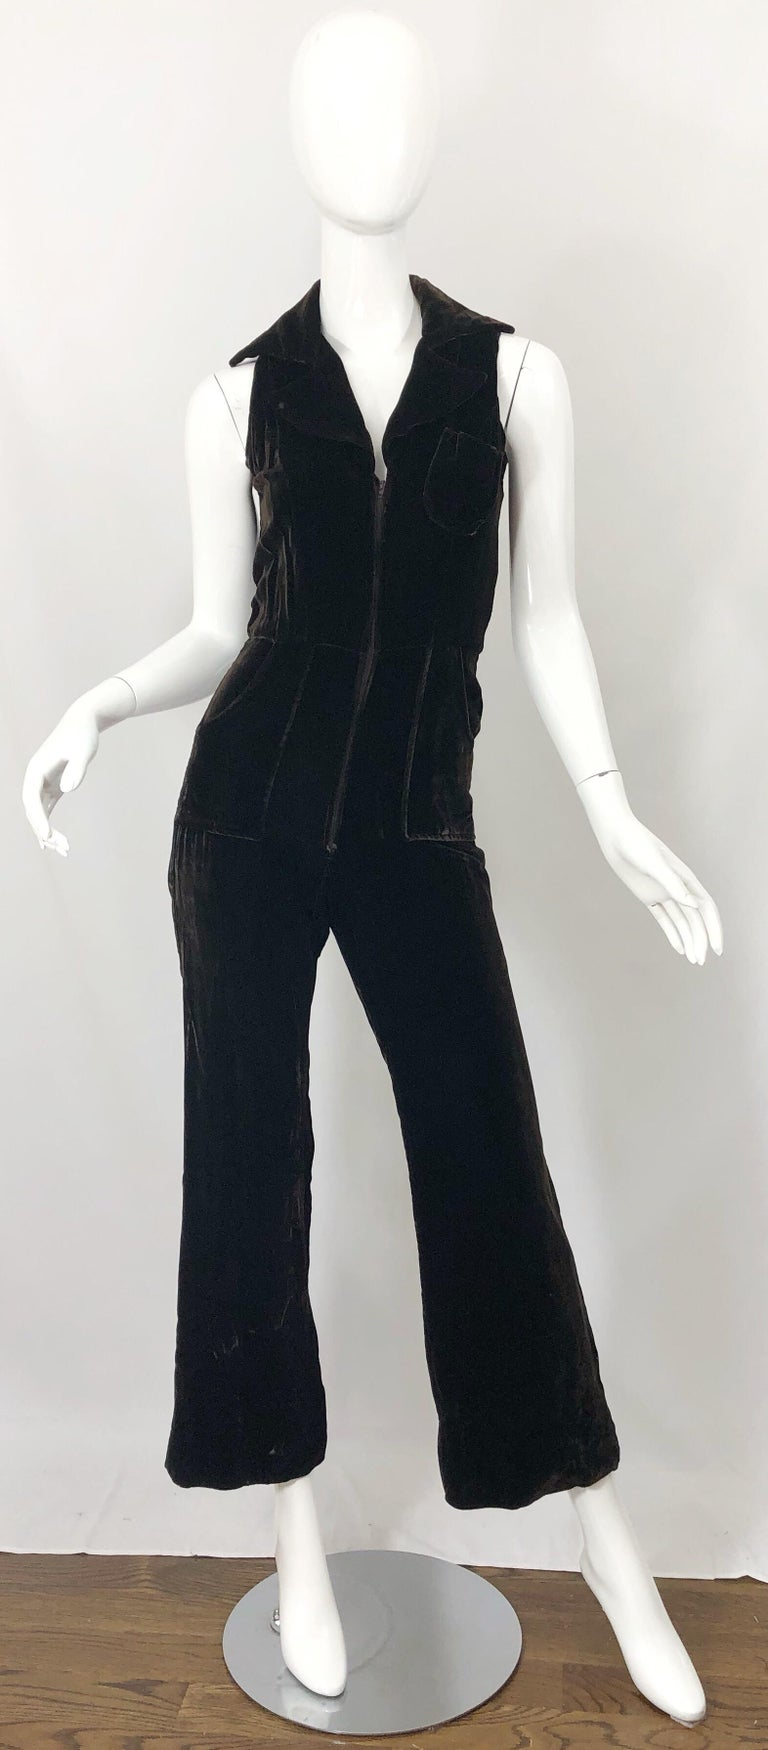 Awesome vintage 70s chocolate brown velvet bell bottom one piece jumpsuit! Features a fitted tailored collared bodice and trousers that leads to wide flared legs. Pocket at left breast and at the side of each hip. Hidden zipper up the front. Super